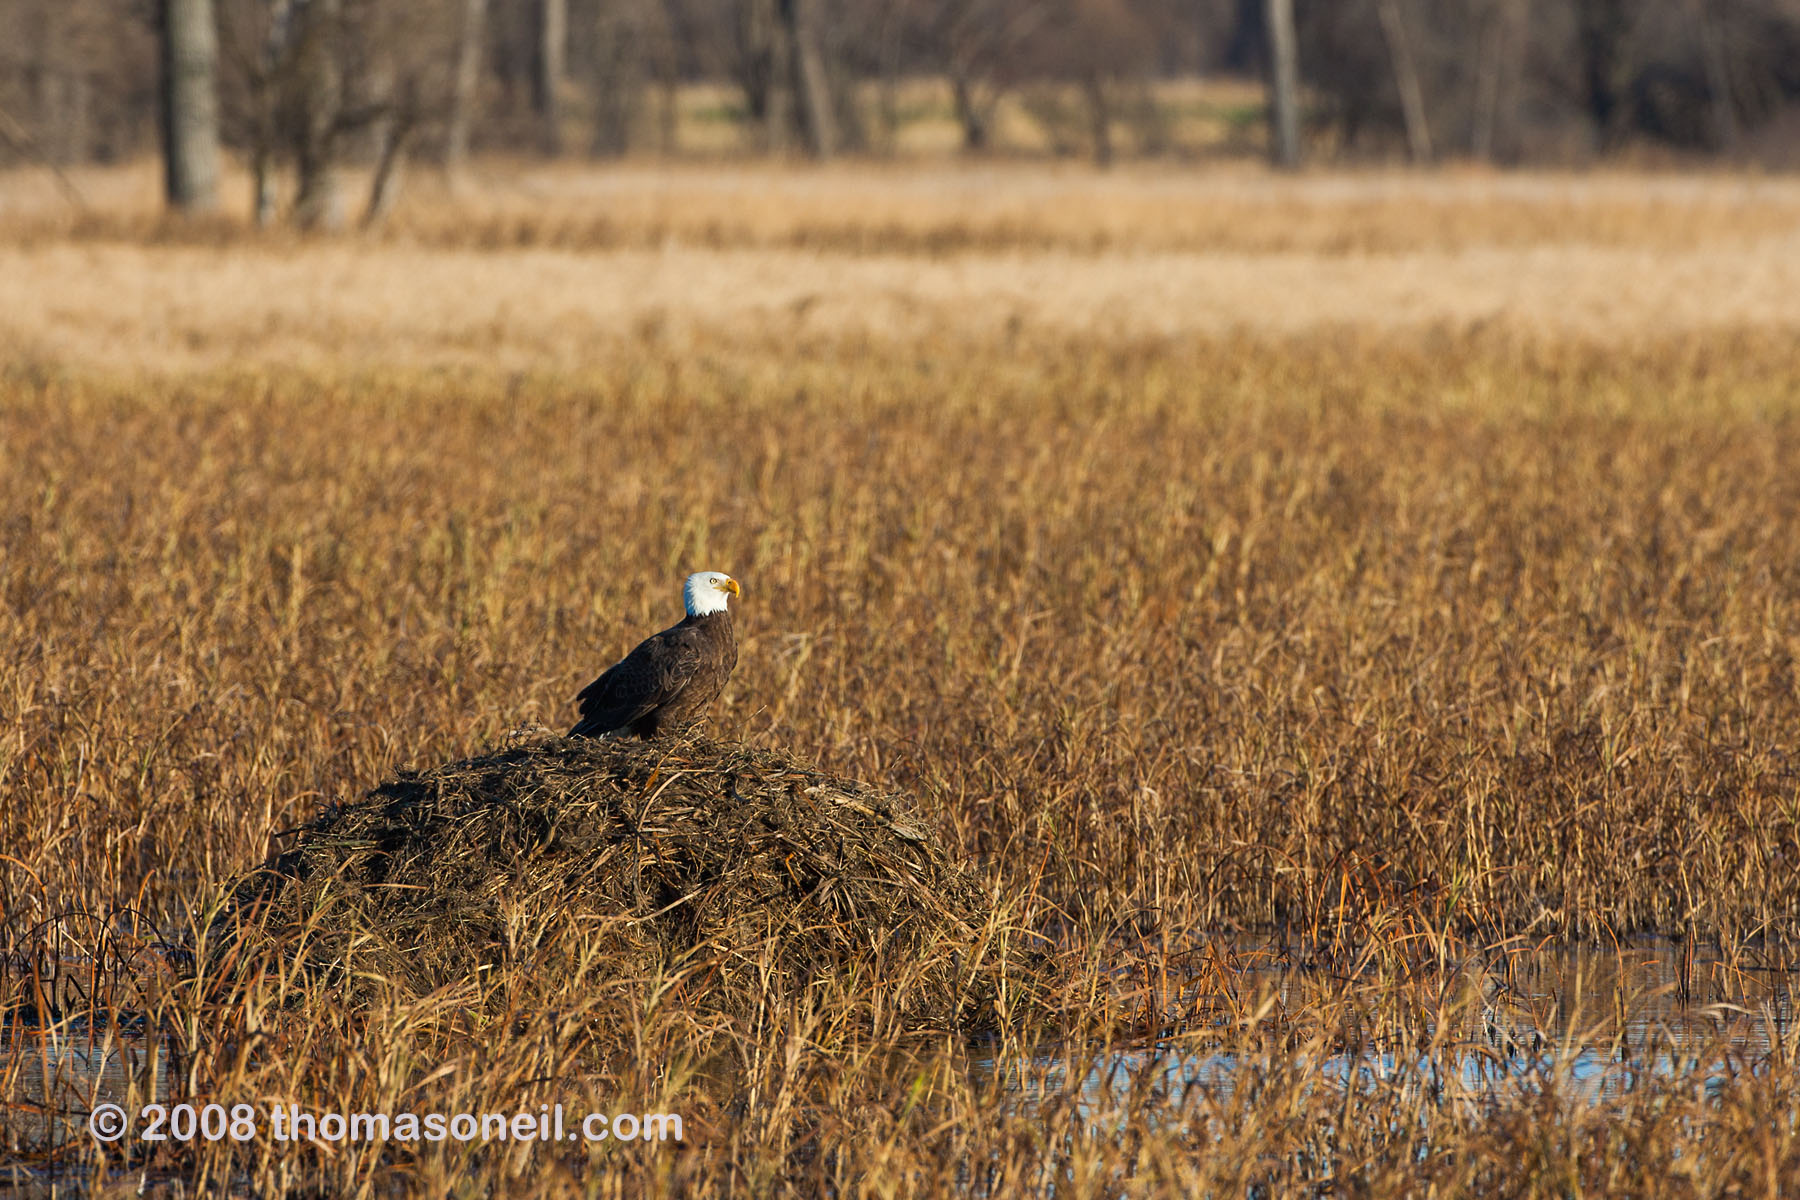 Bald eagle on a muskrat hut, Squaw Creek NWR, MO, November 2008.  Click for next photo.